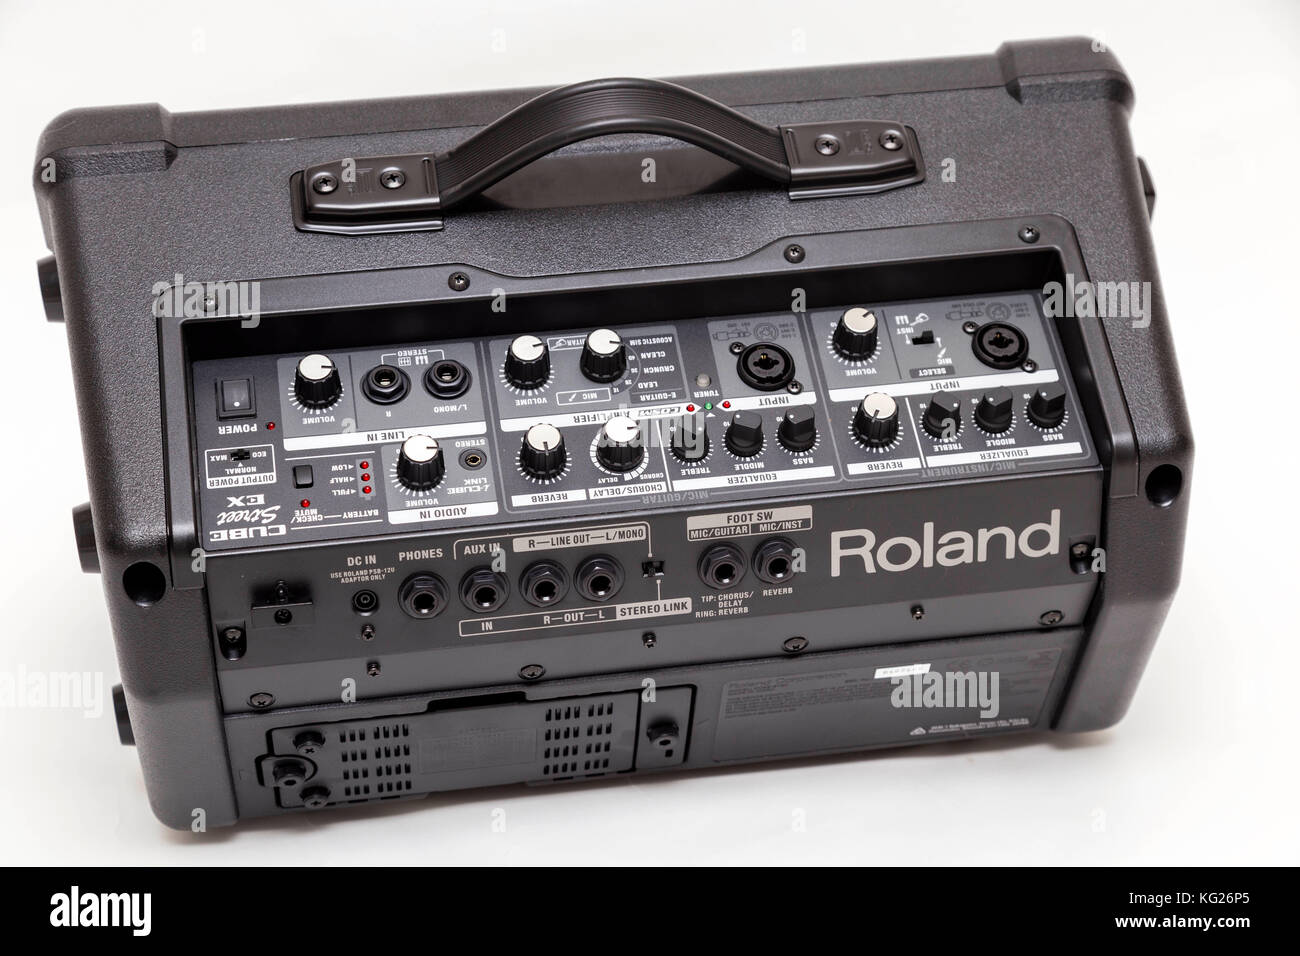 Roland Street Cube EX buskers amplifier. XLR microphone inputs, guitar channel, keyboards - Stock Image